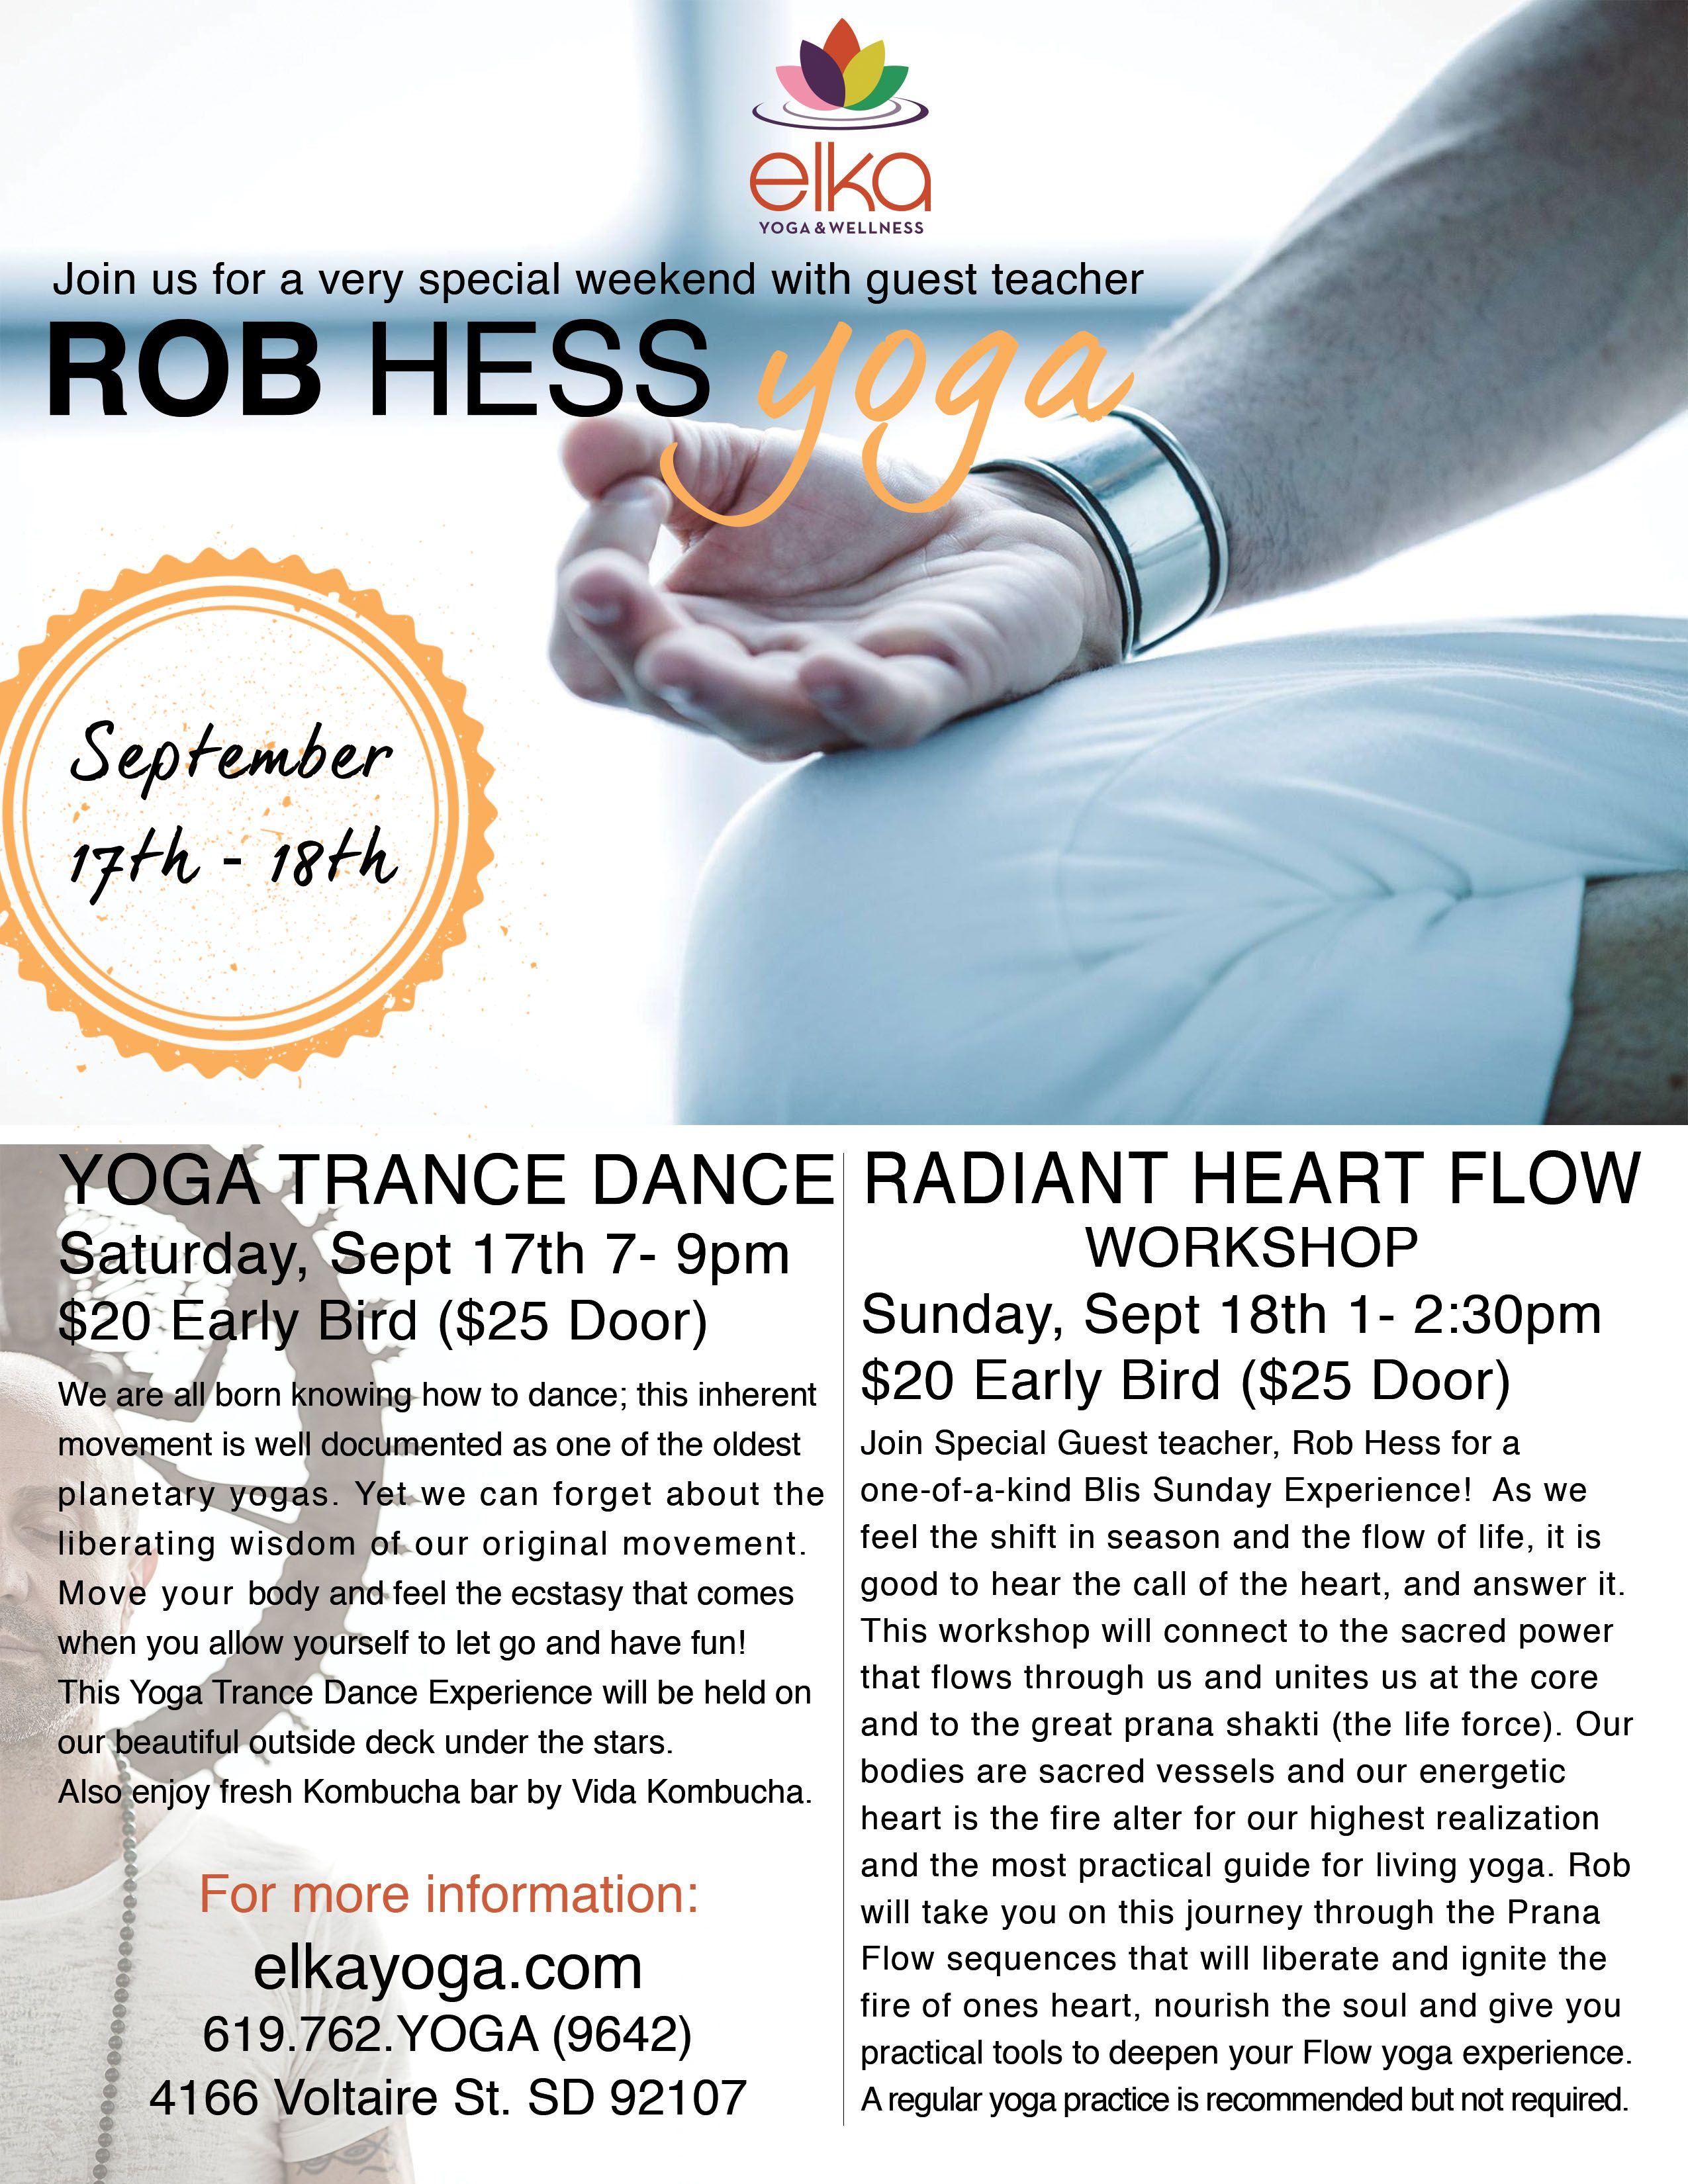 Rob Hess Yoga Workshops Flyer Design By Camila Badaro Client Elka And Wellness